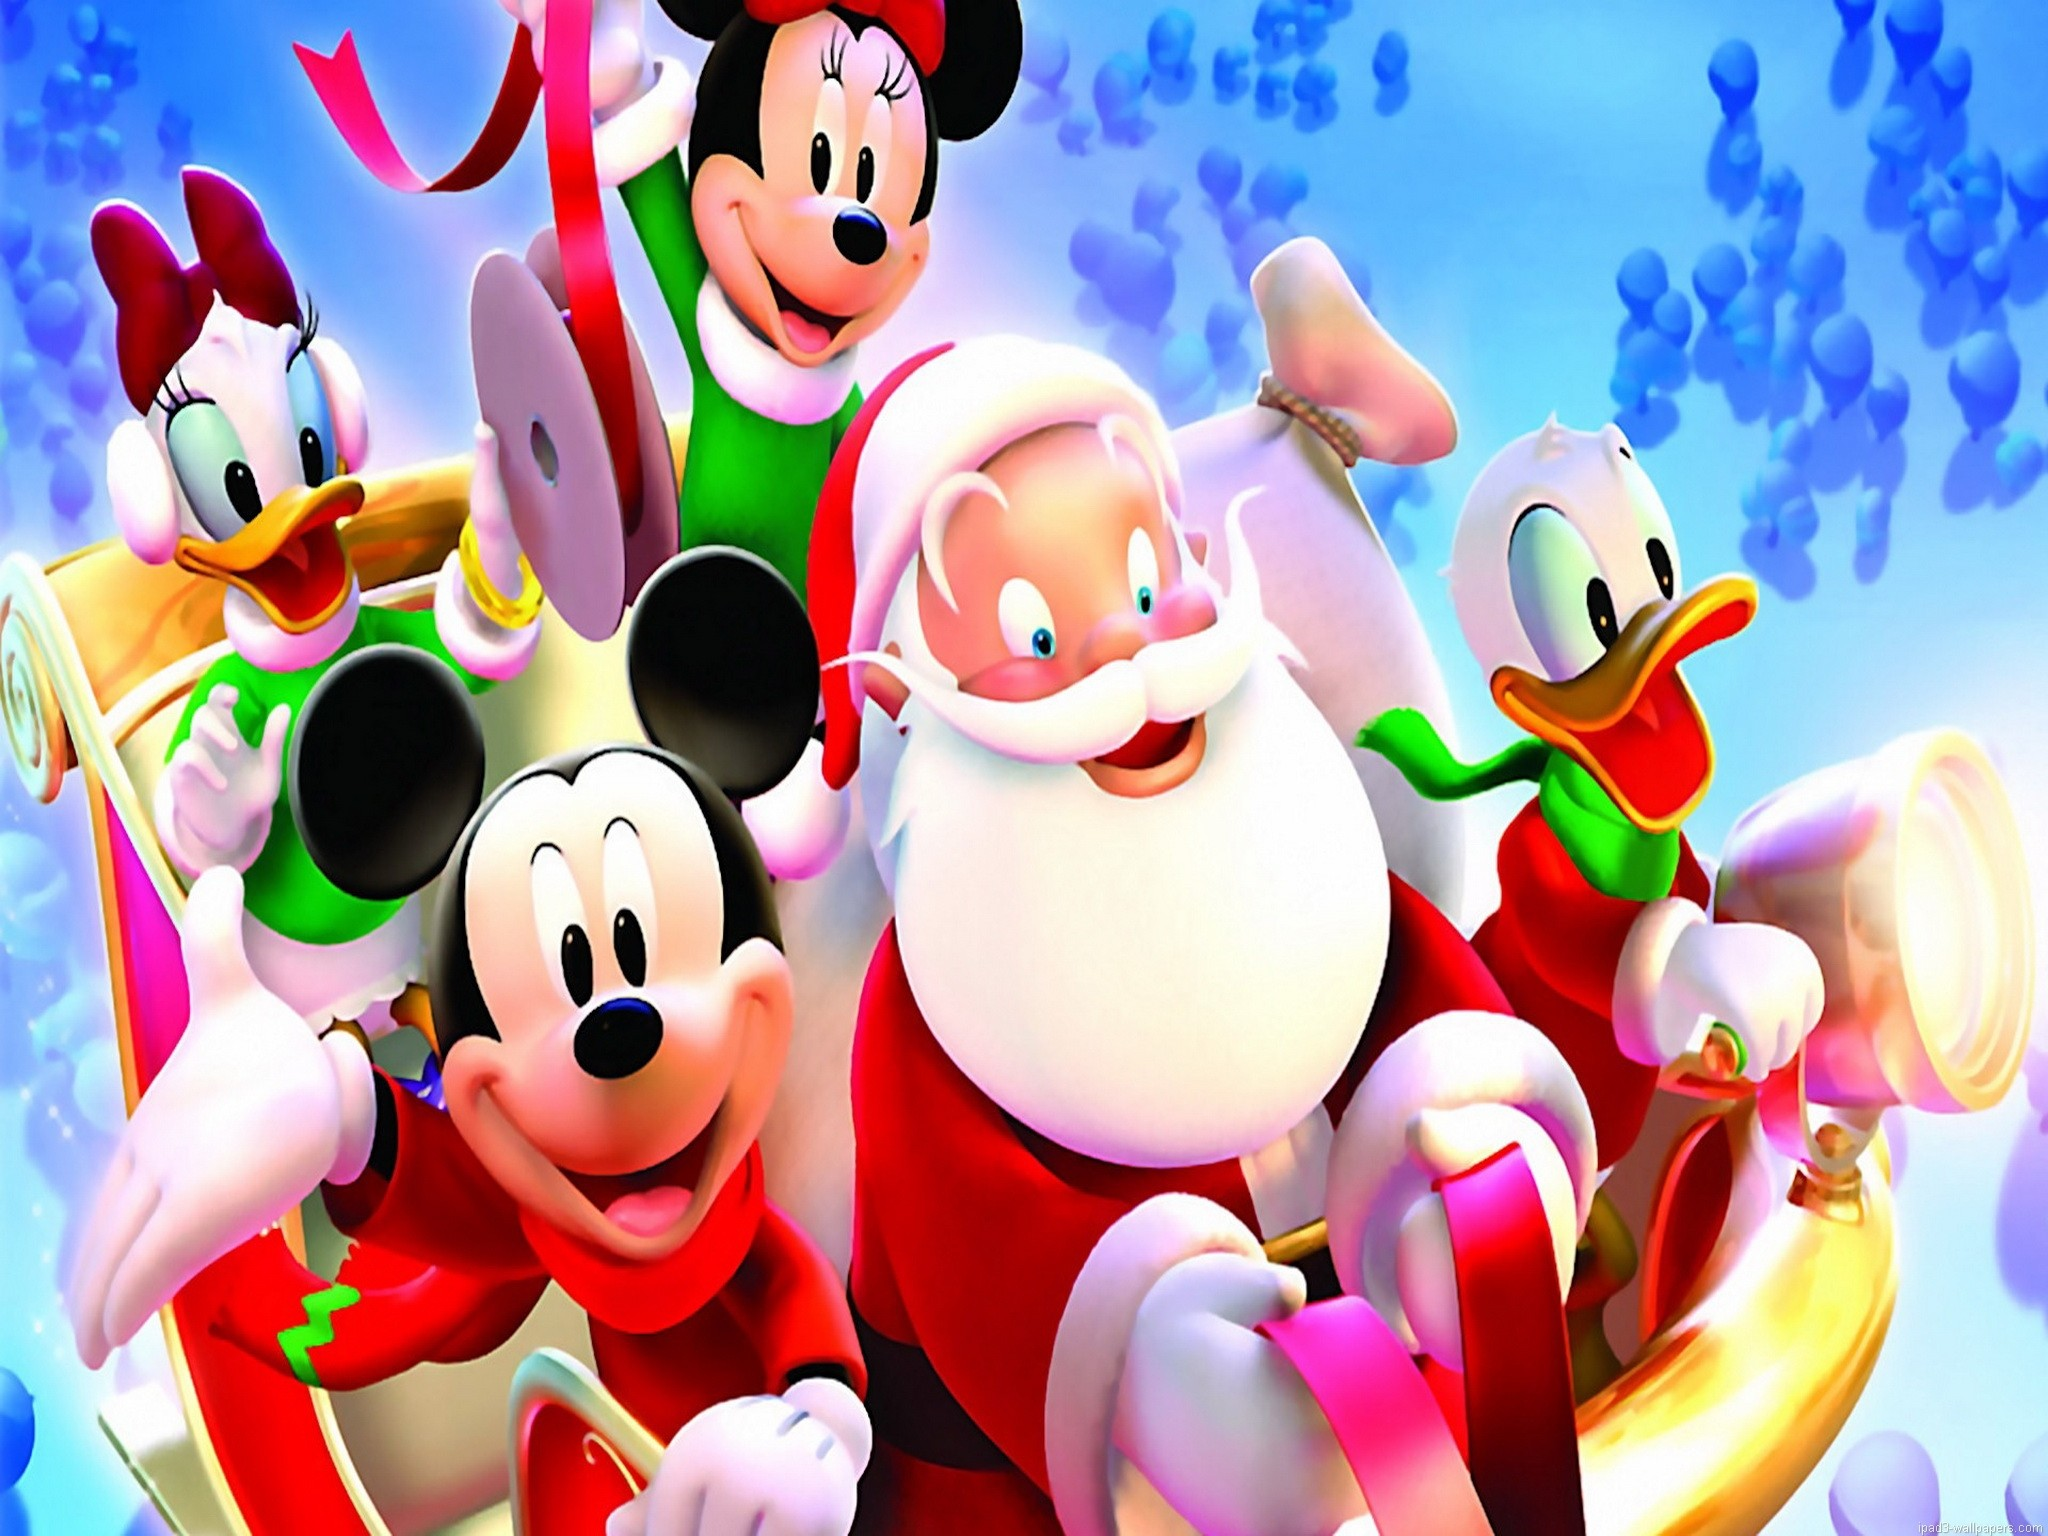 2048x1536 mickey santa christmas wallpaper iPad 3 Wallpaper iPad 3 Background